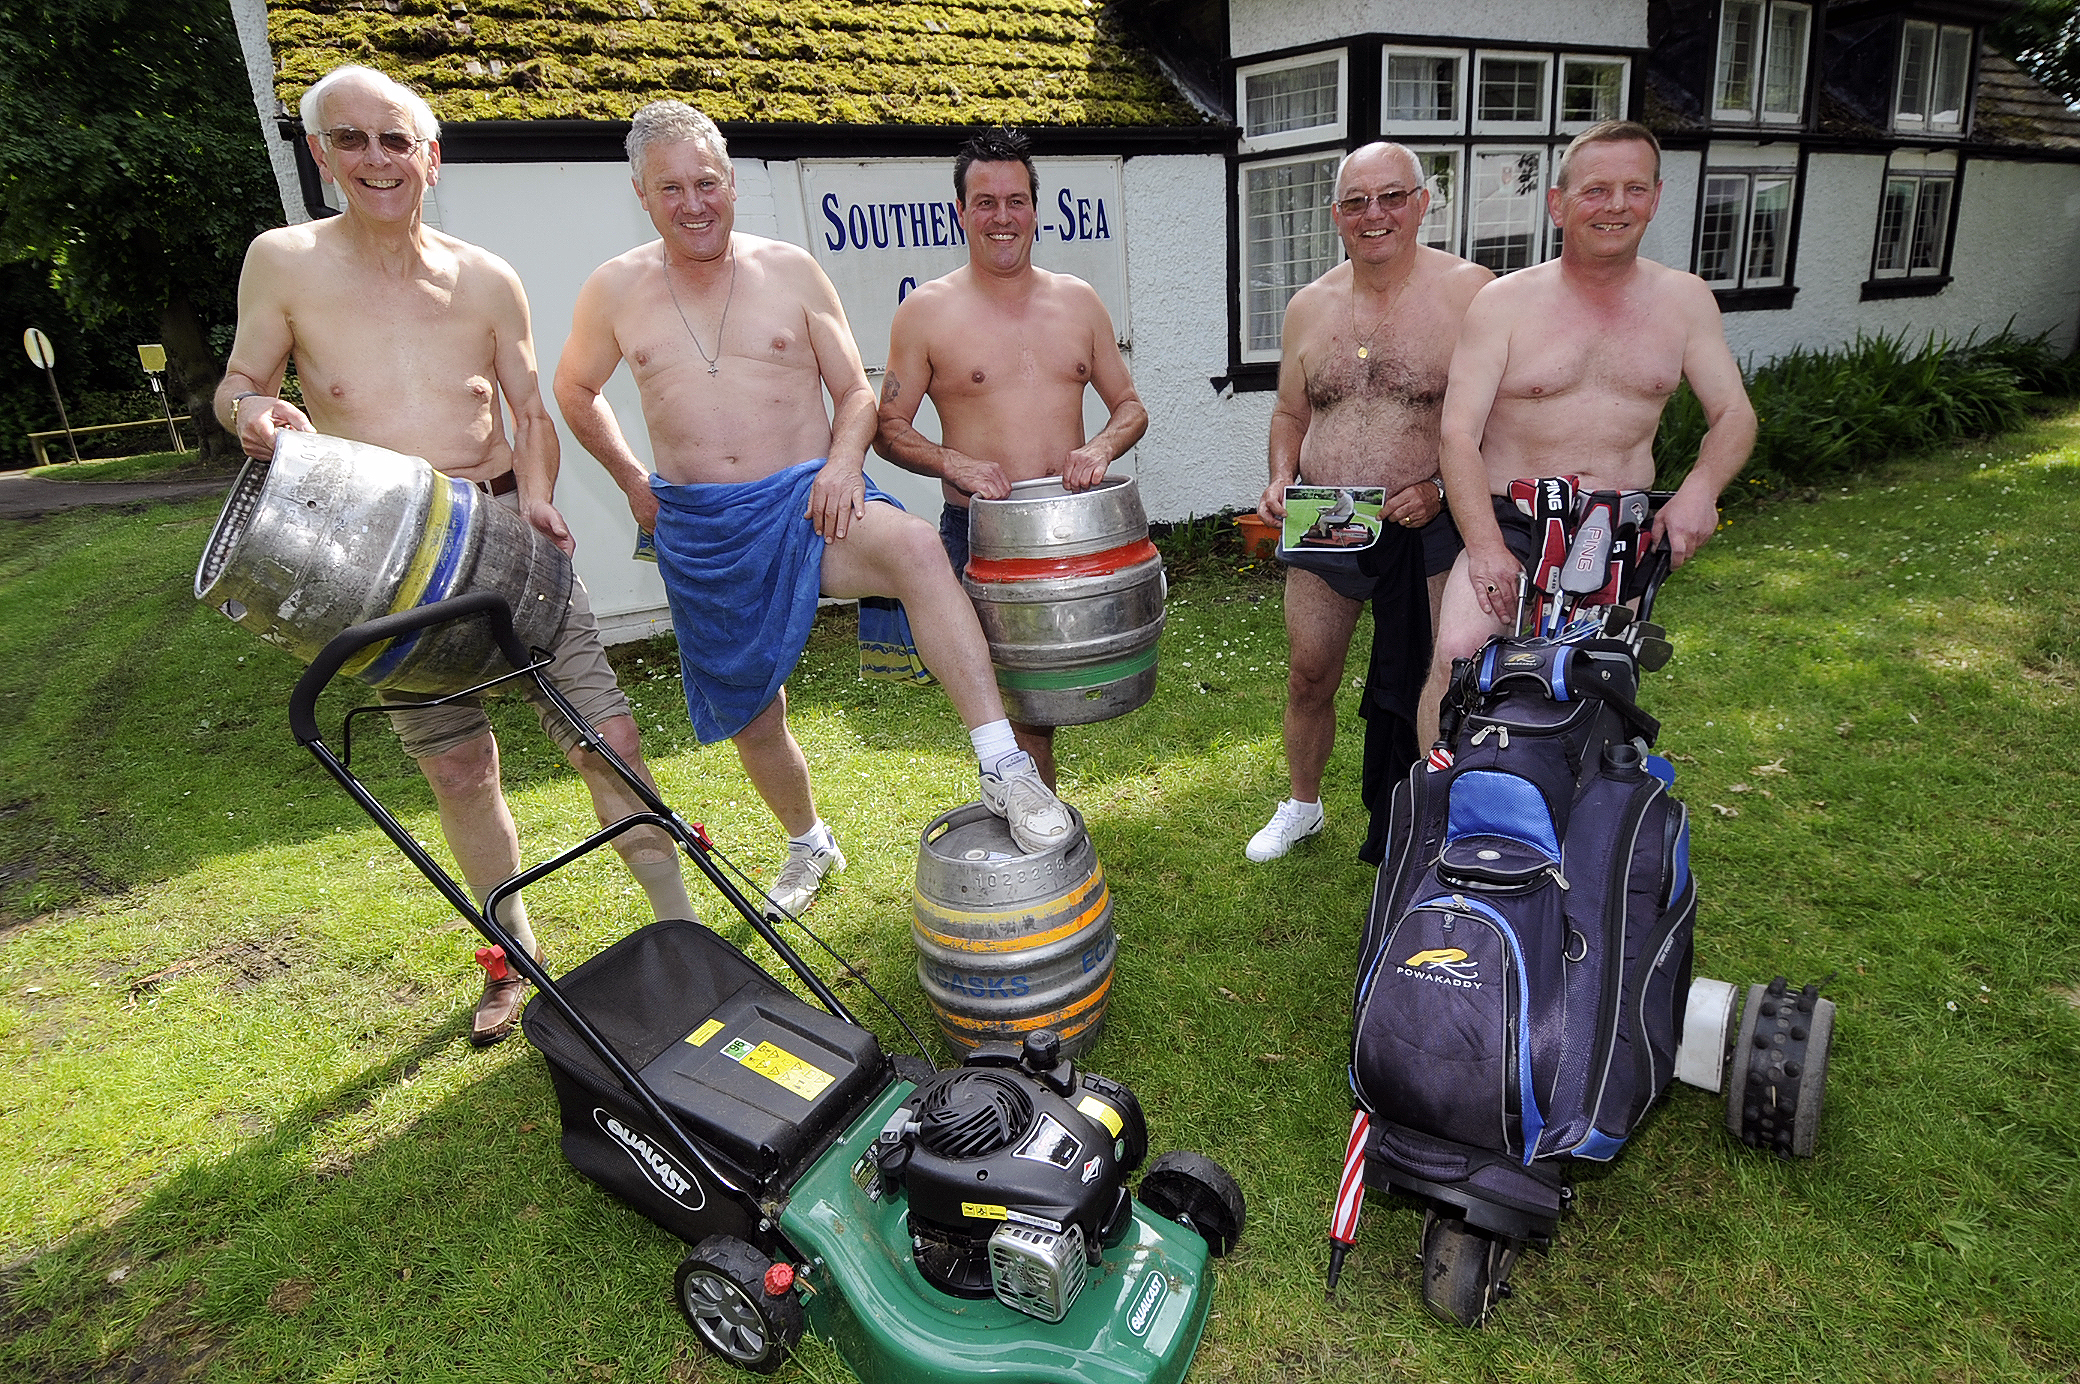 Stripping off - the golfers pose